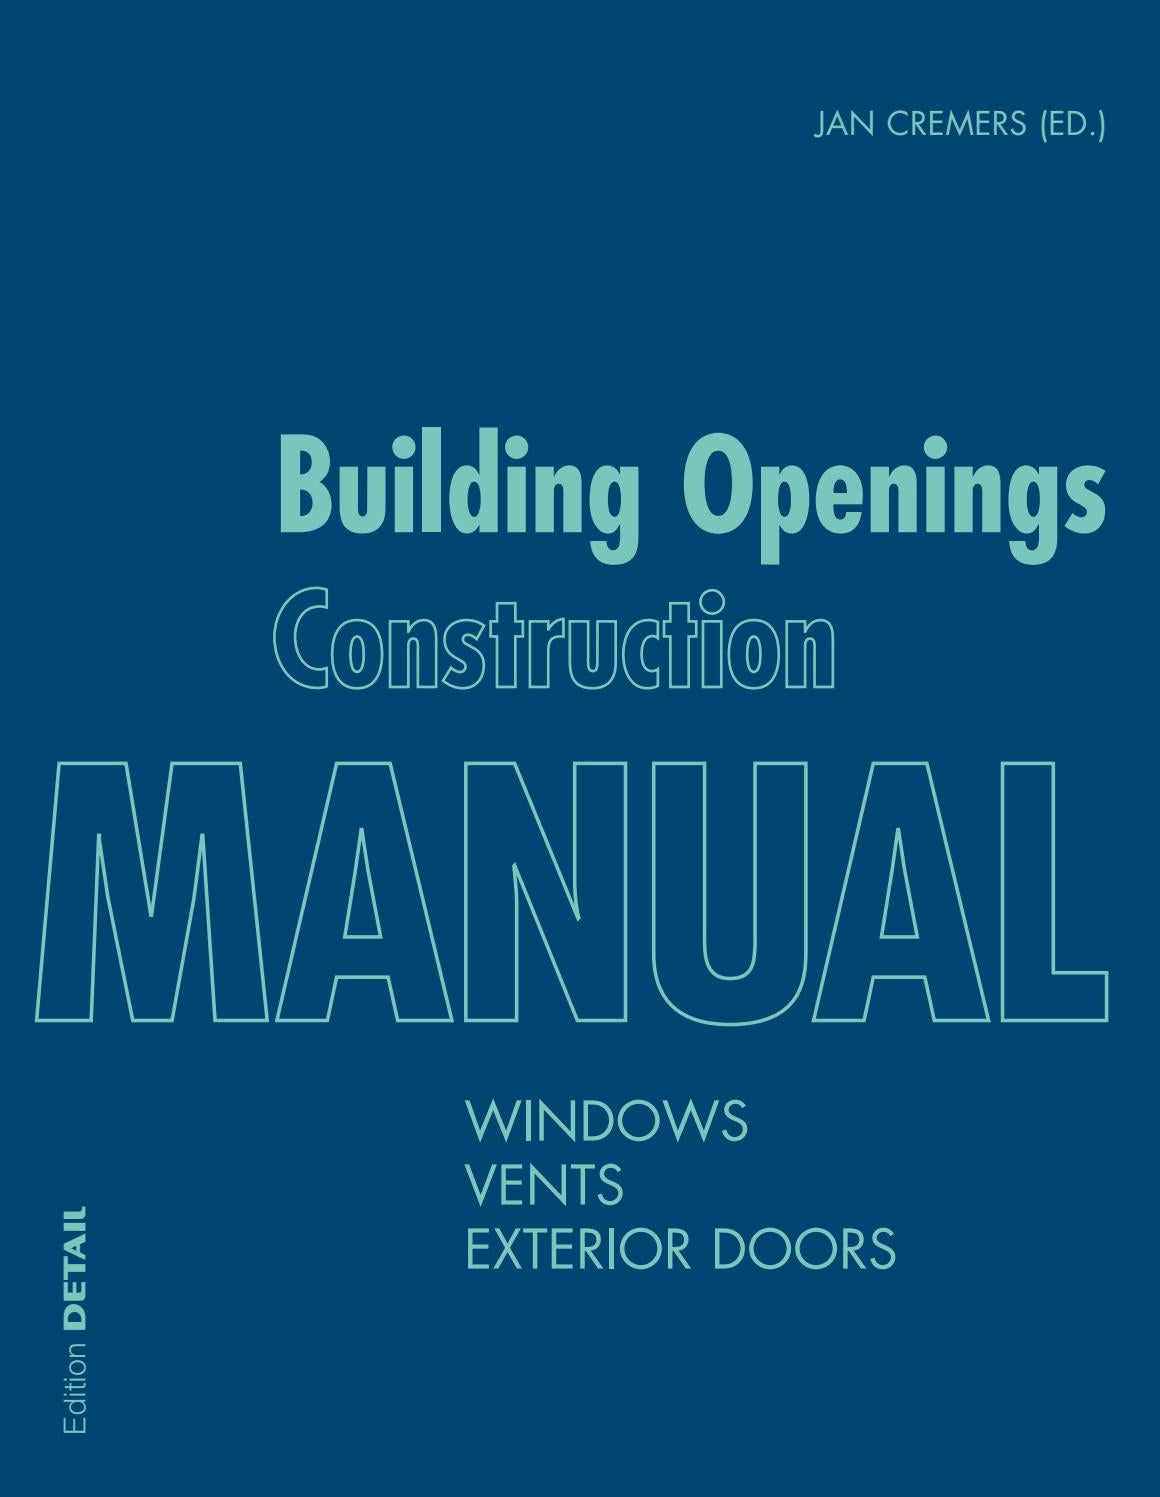 Building Openings Construction Manual by DETAIL - issuu